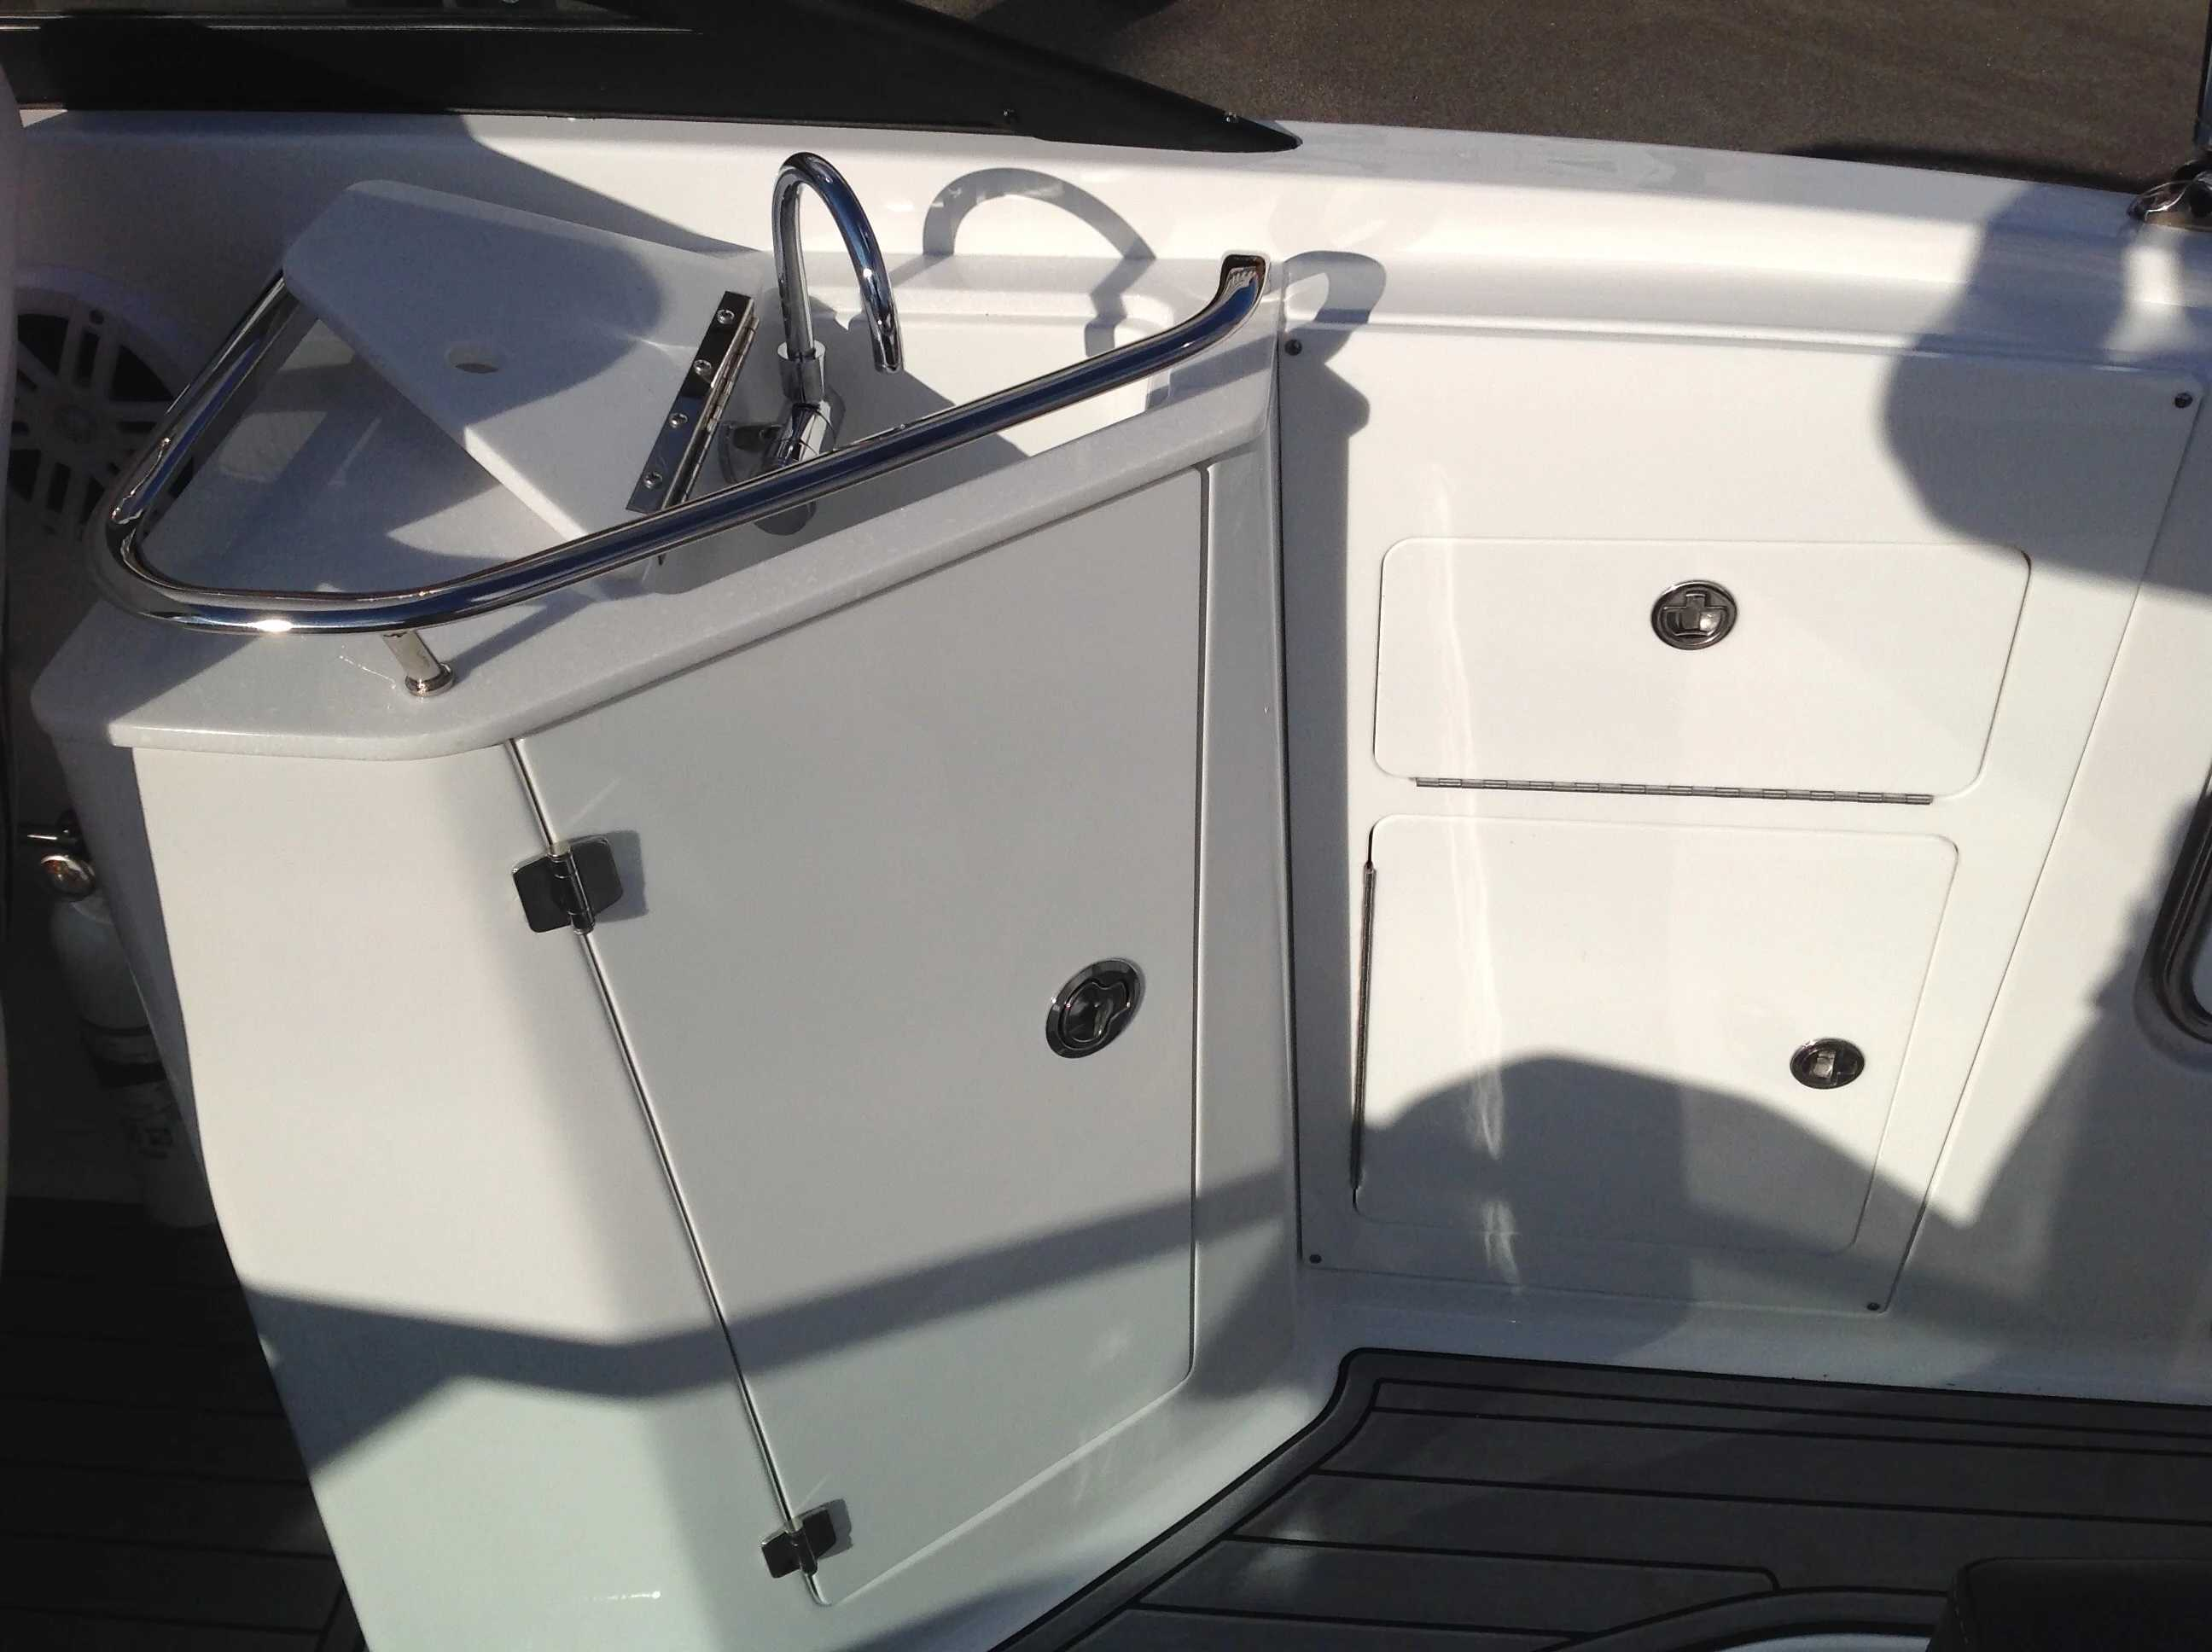 2021 Monterey boat for sale, model of the boat is M45 & Image # 11 of 21